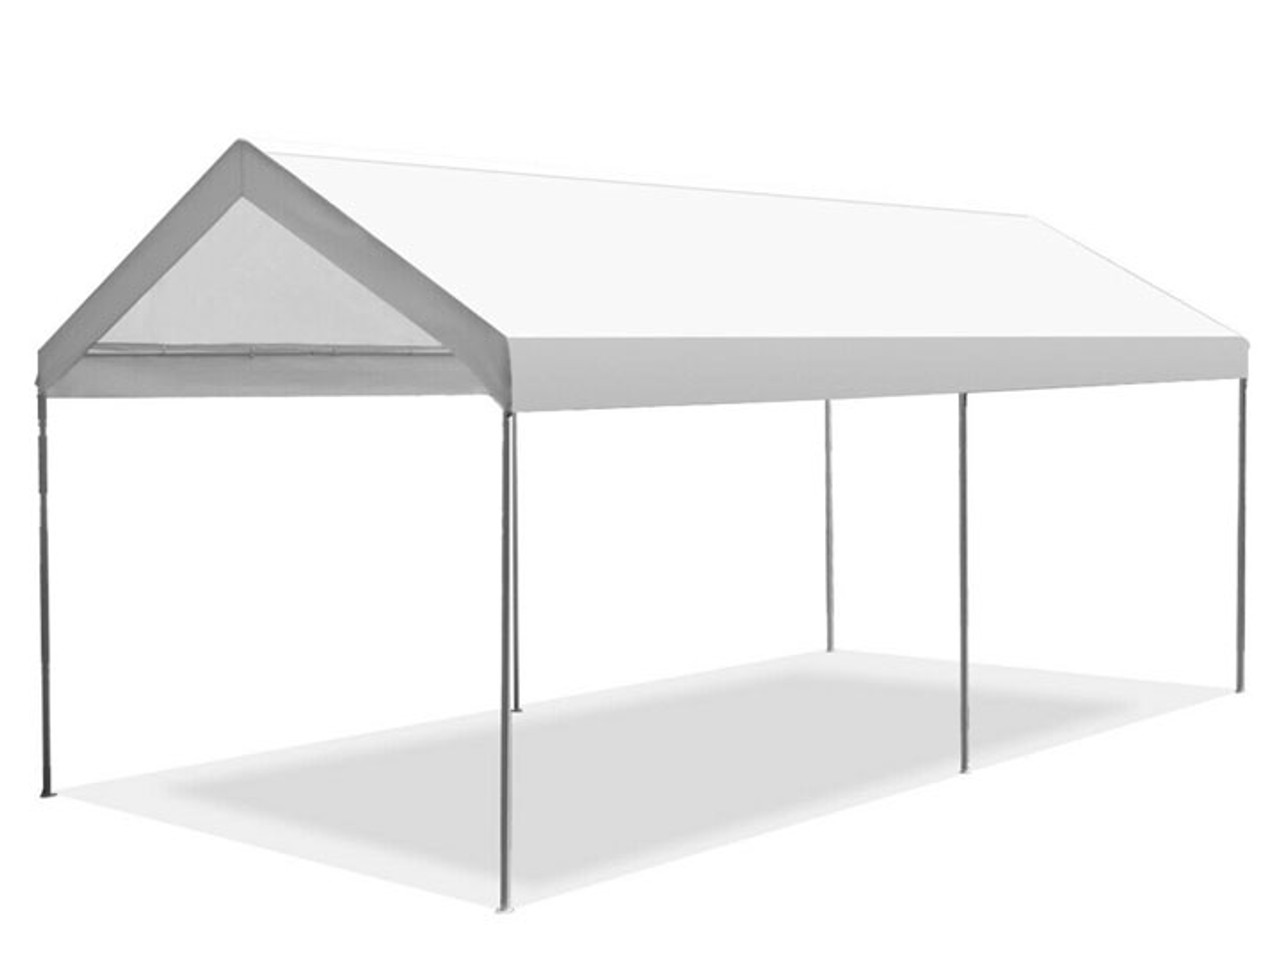 "Gymax Steel Frame Portable 10"" x 20'"" Car Carport Garage Cover"